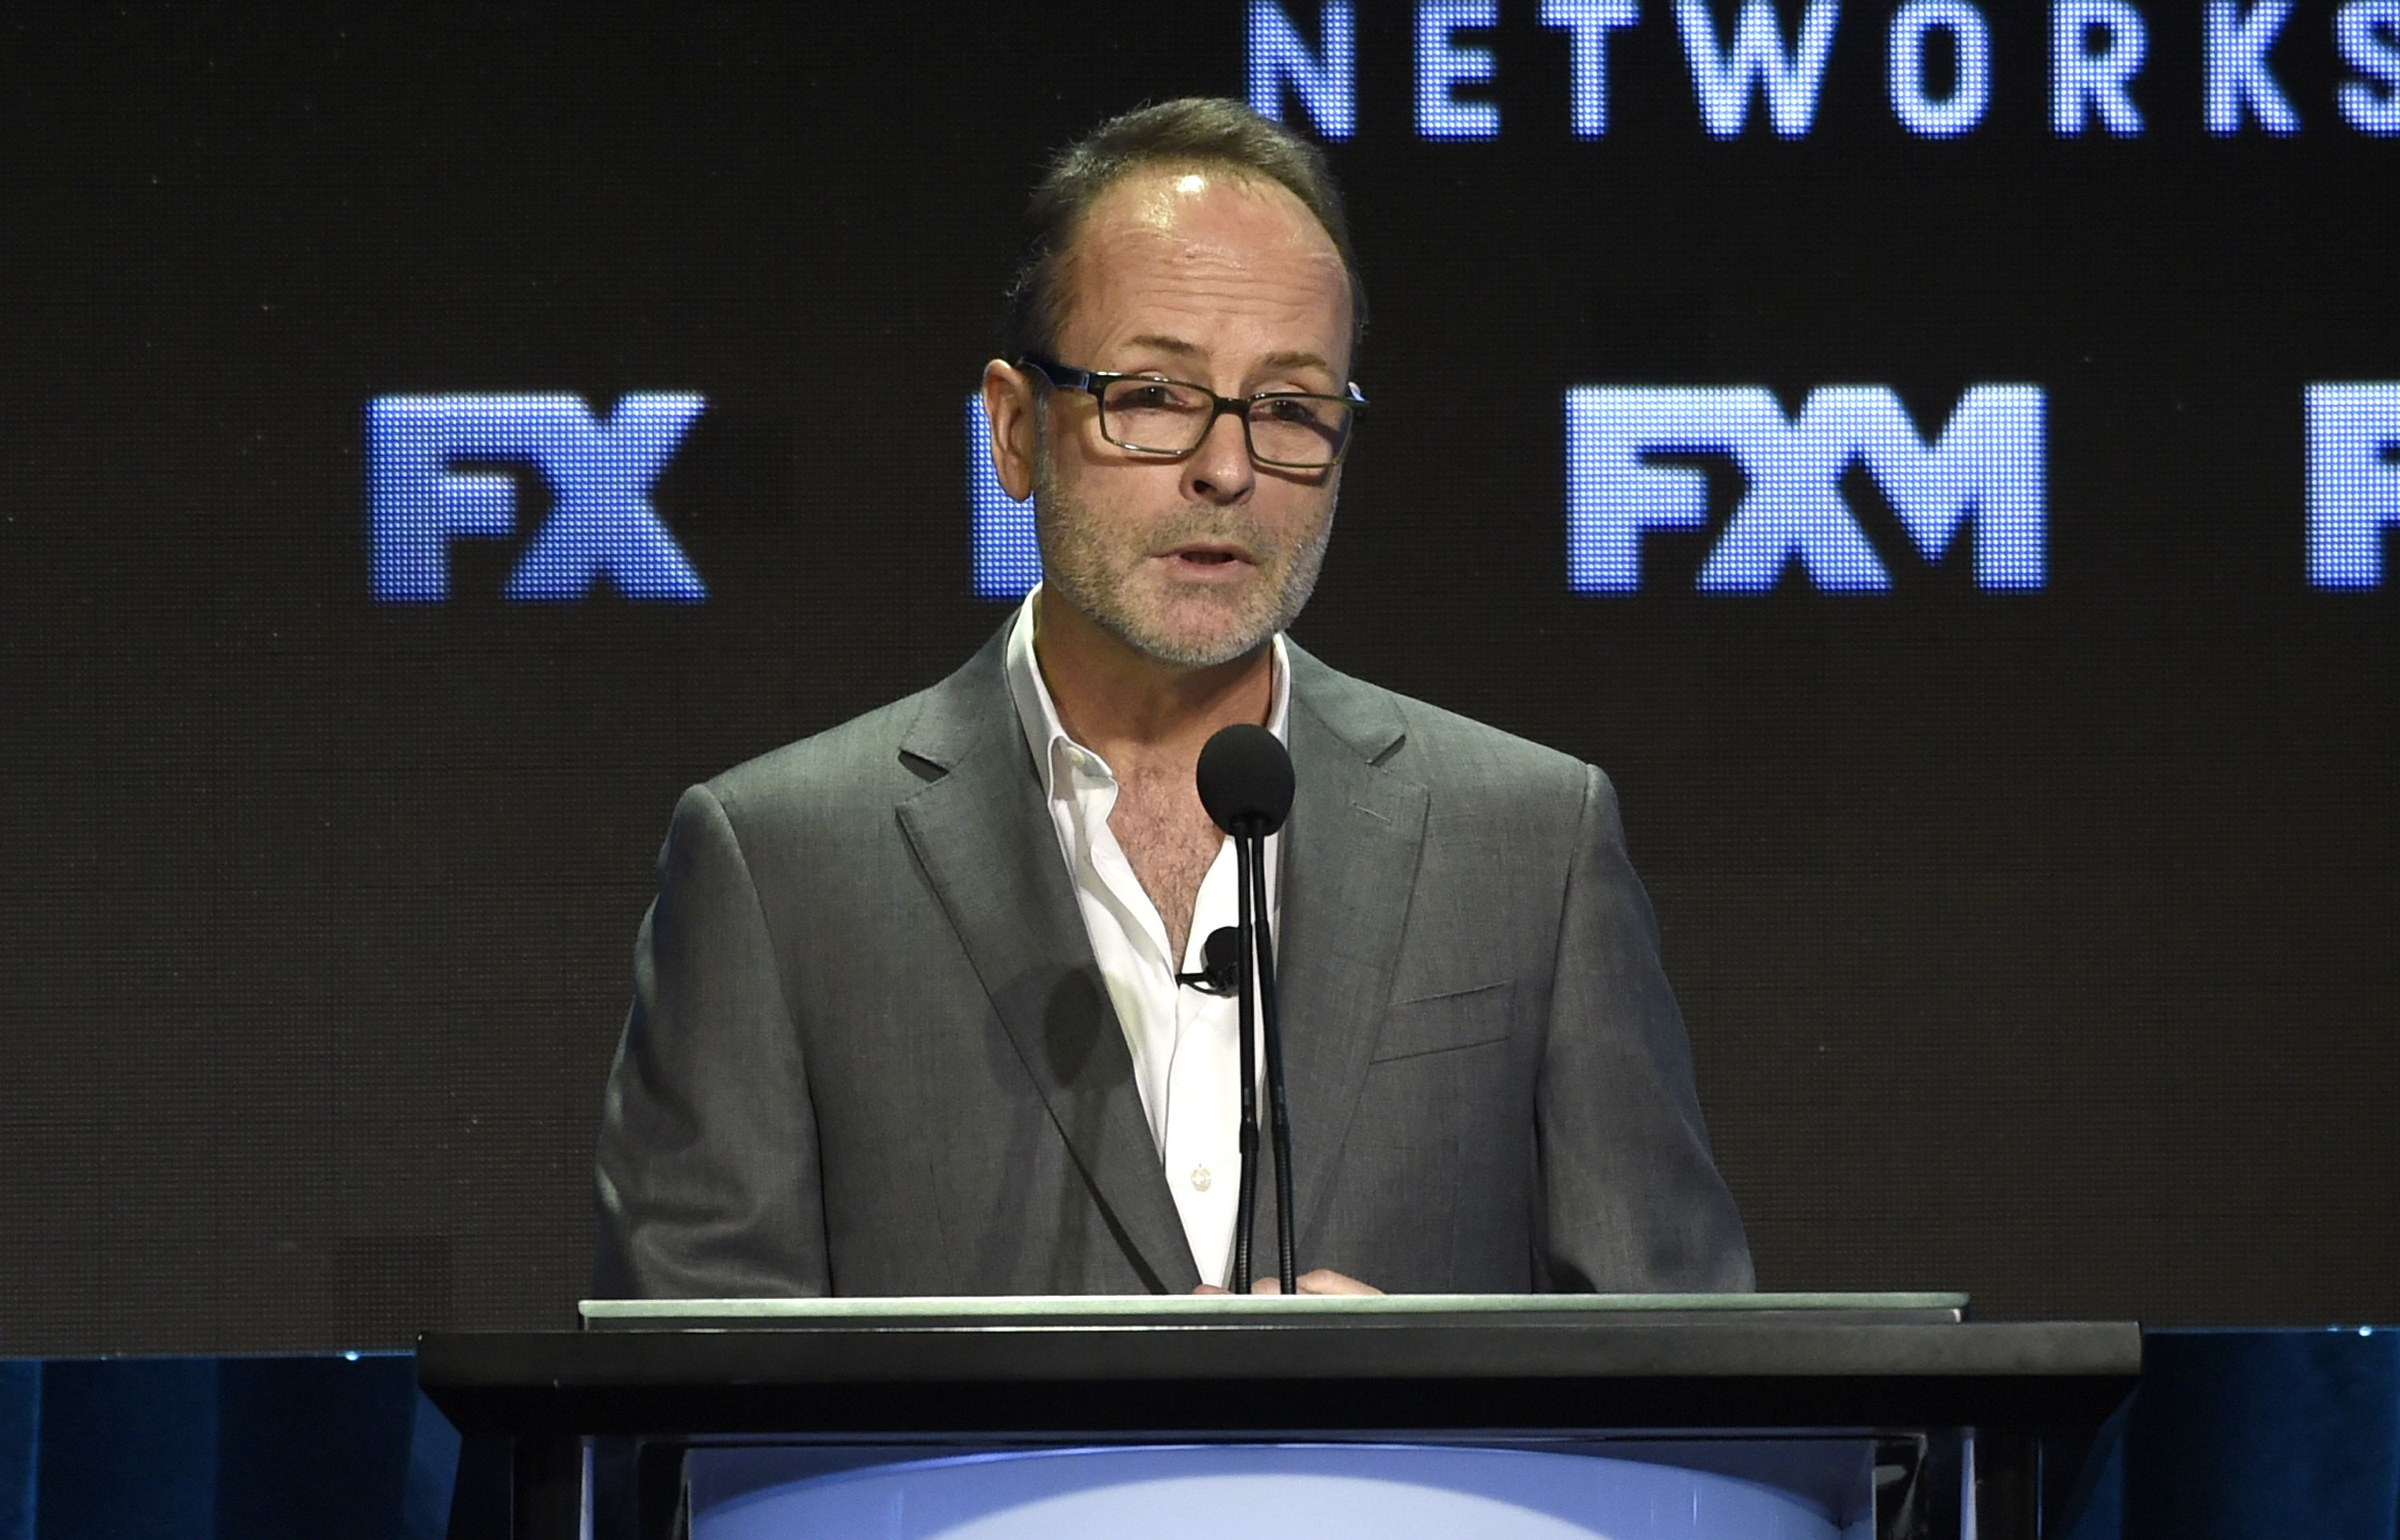 FX CEO Explains Decision to Cut Ties With Louis CK